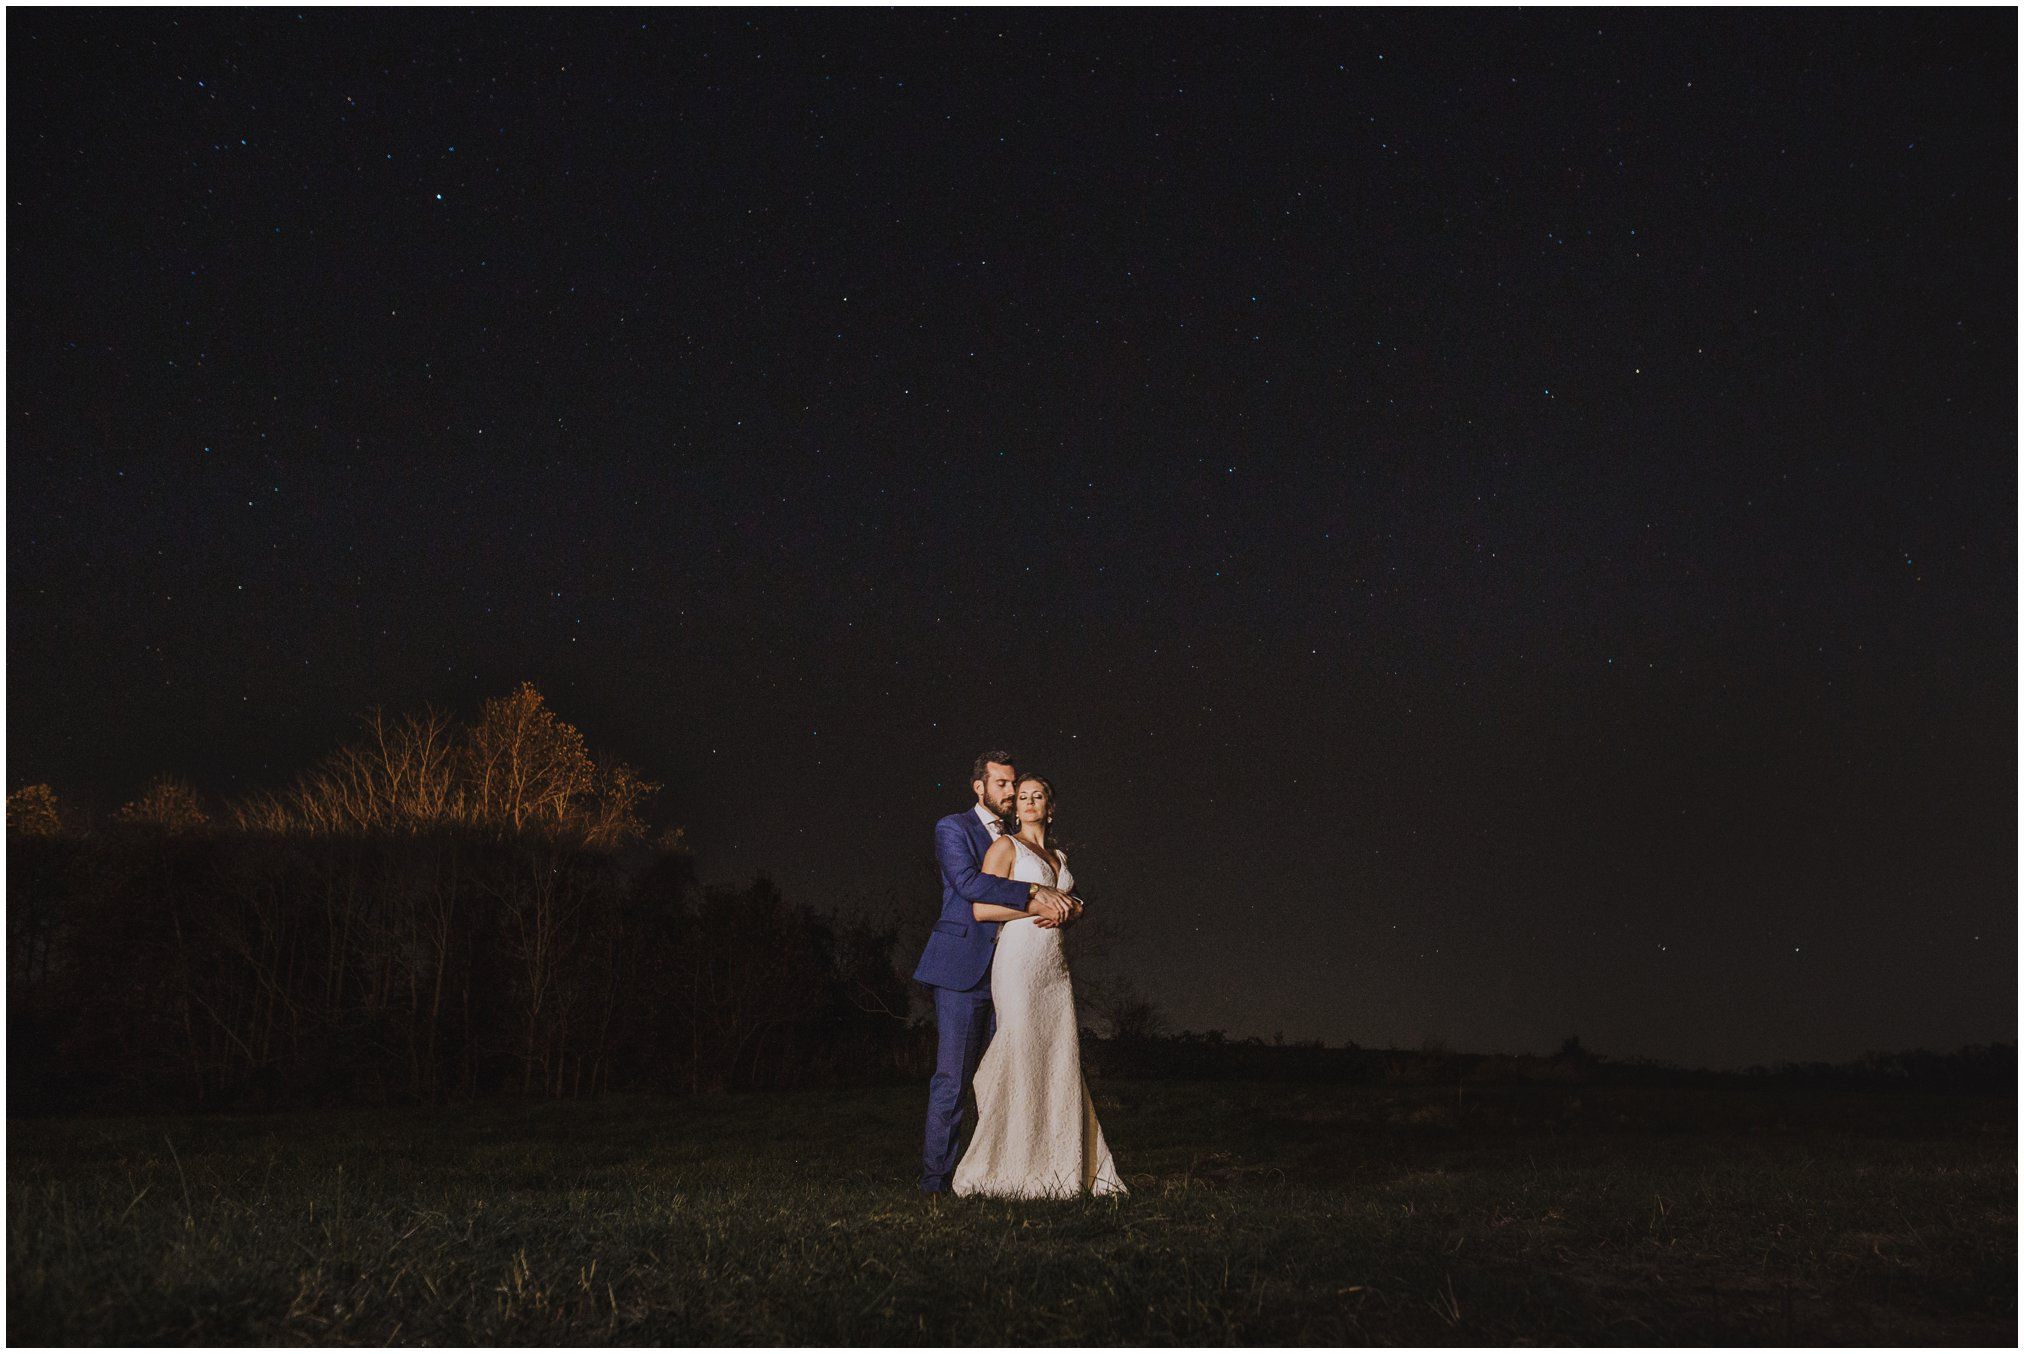 Night time wedding pictures under the stars